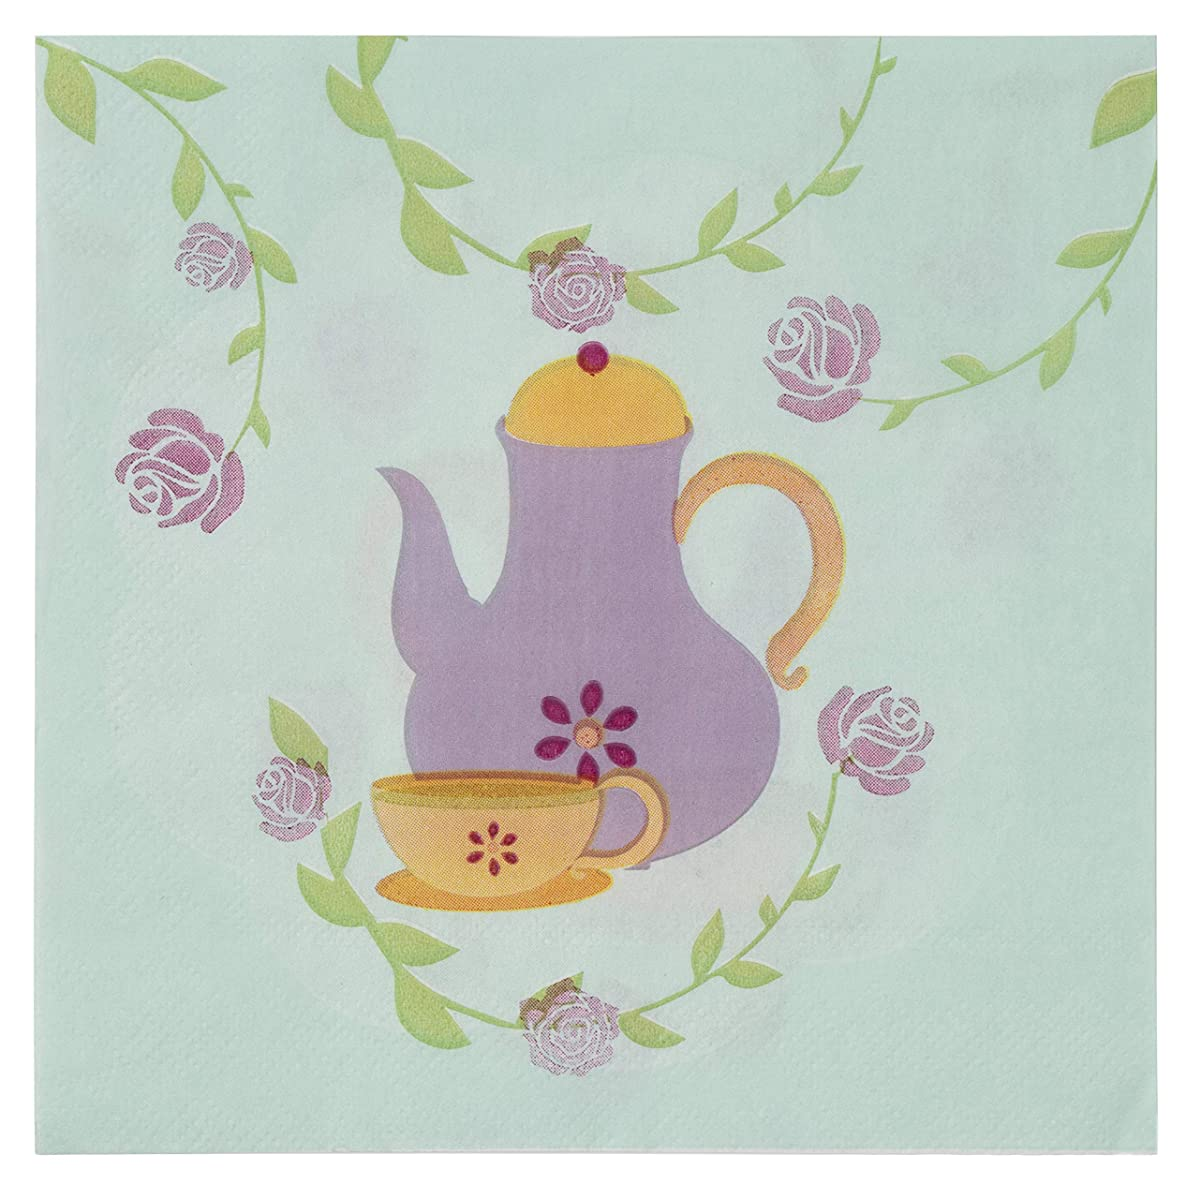 Cocktail Napkins - 150-Pack Luncheon Napkins, Disposable Paper Napkins Kids Birthday Party Supplies, 2-Ply, Garden Tea Party Design, Unfolded 13 x 13 Inches, Folded 6.5 x 6.5 Inches